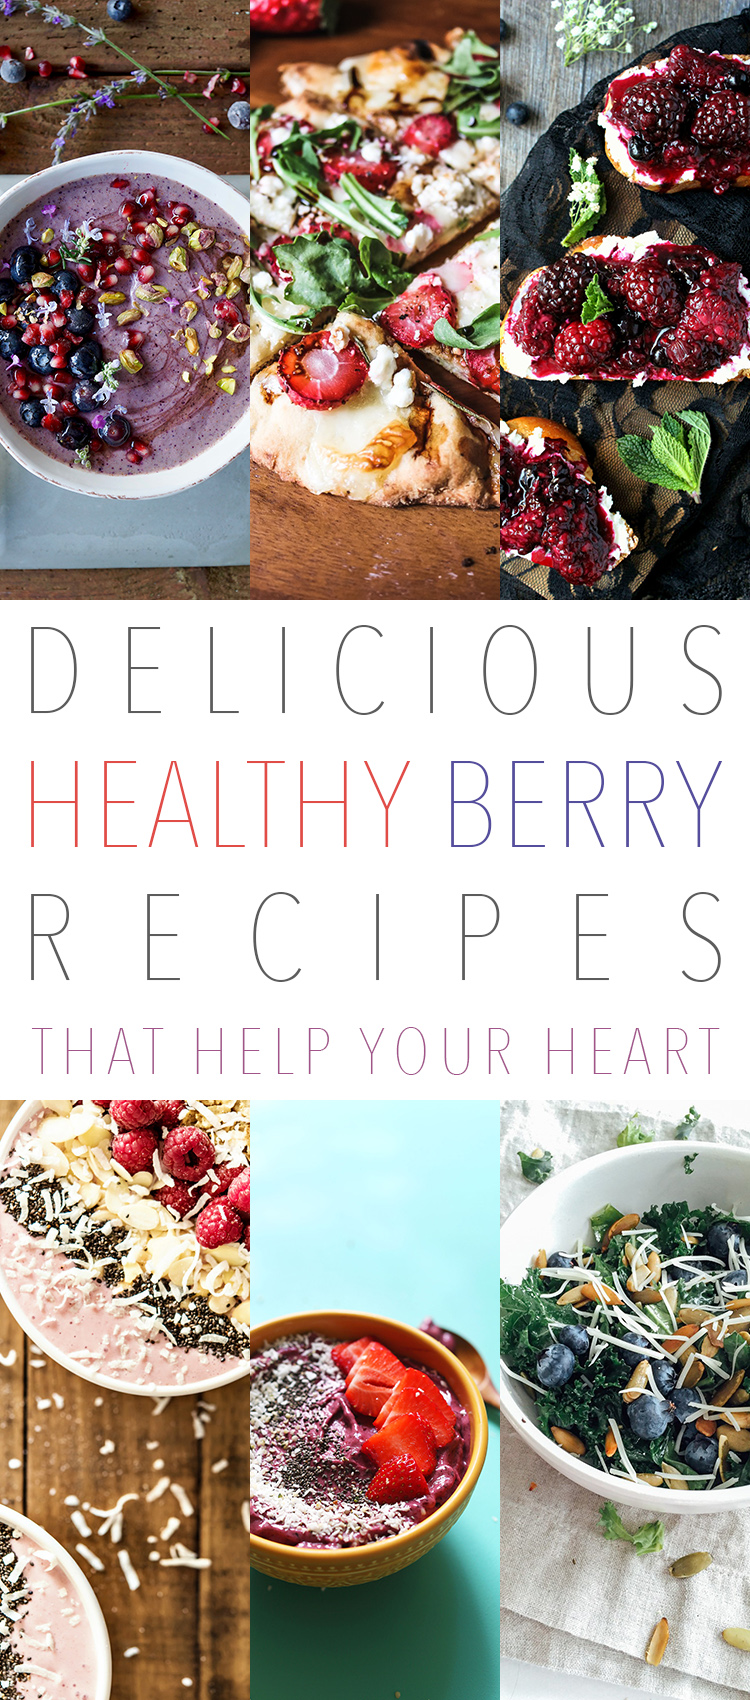 Delicious healthy berry recipes that help your heart the cottage delicious healthy berry recipes that help your heart forumfinder Choice Image